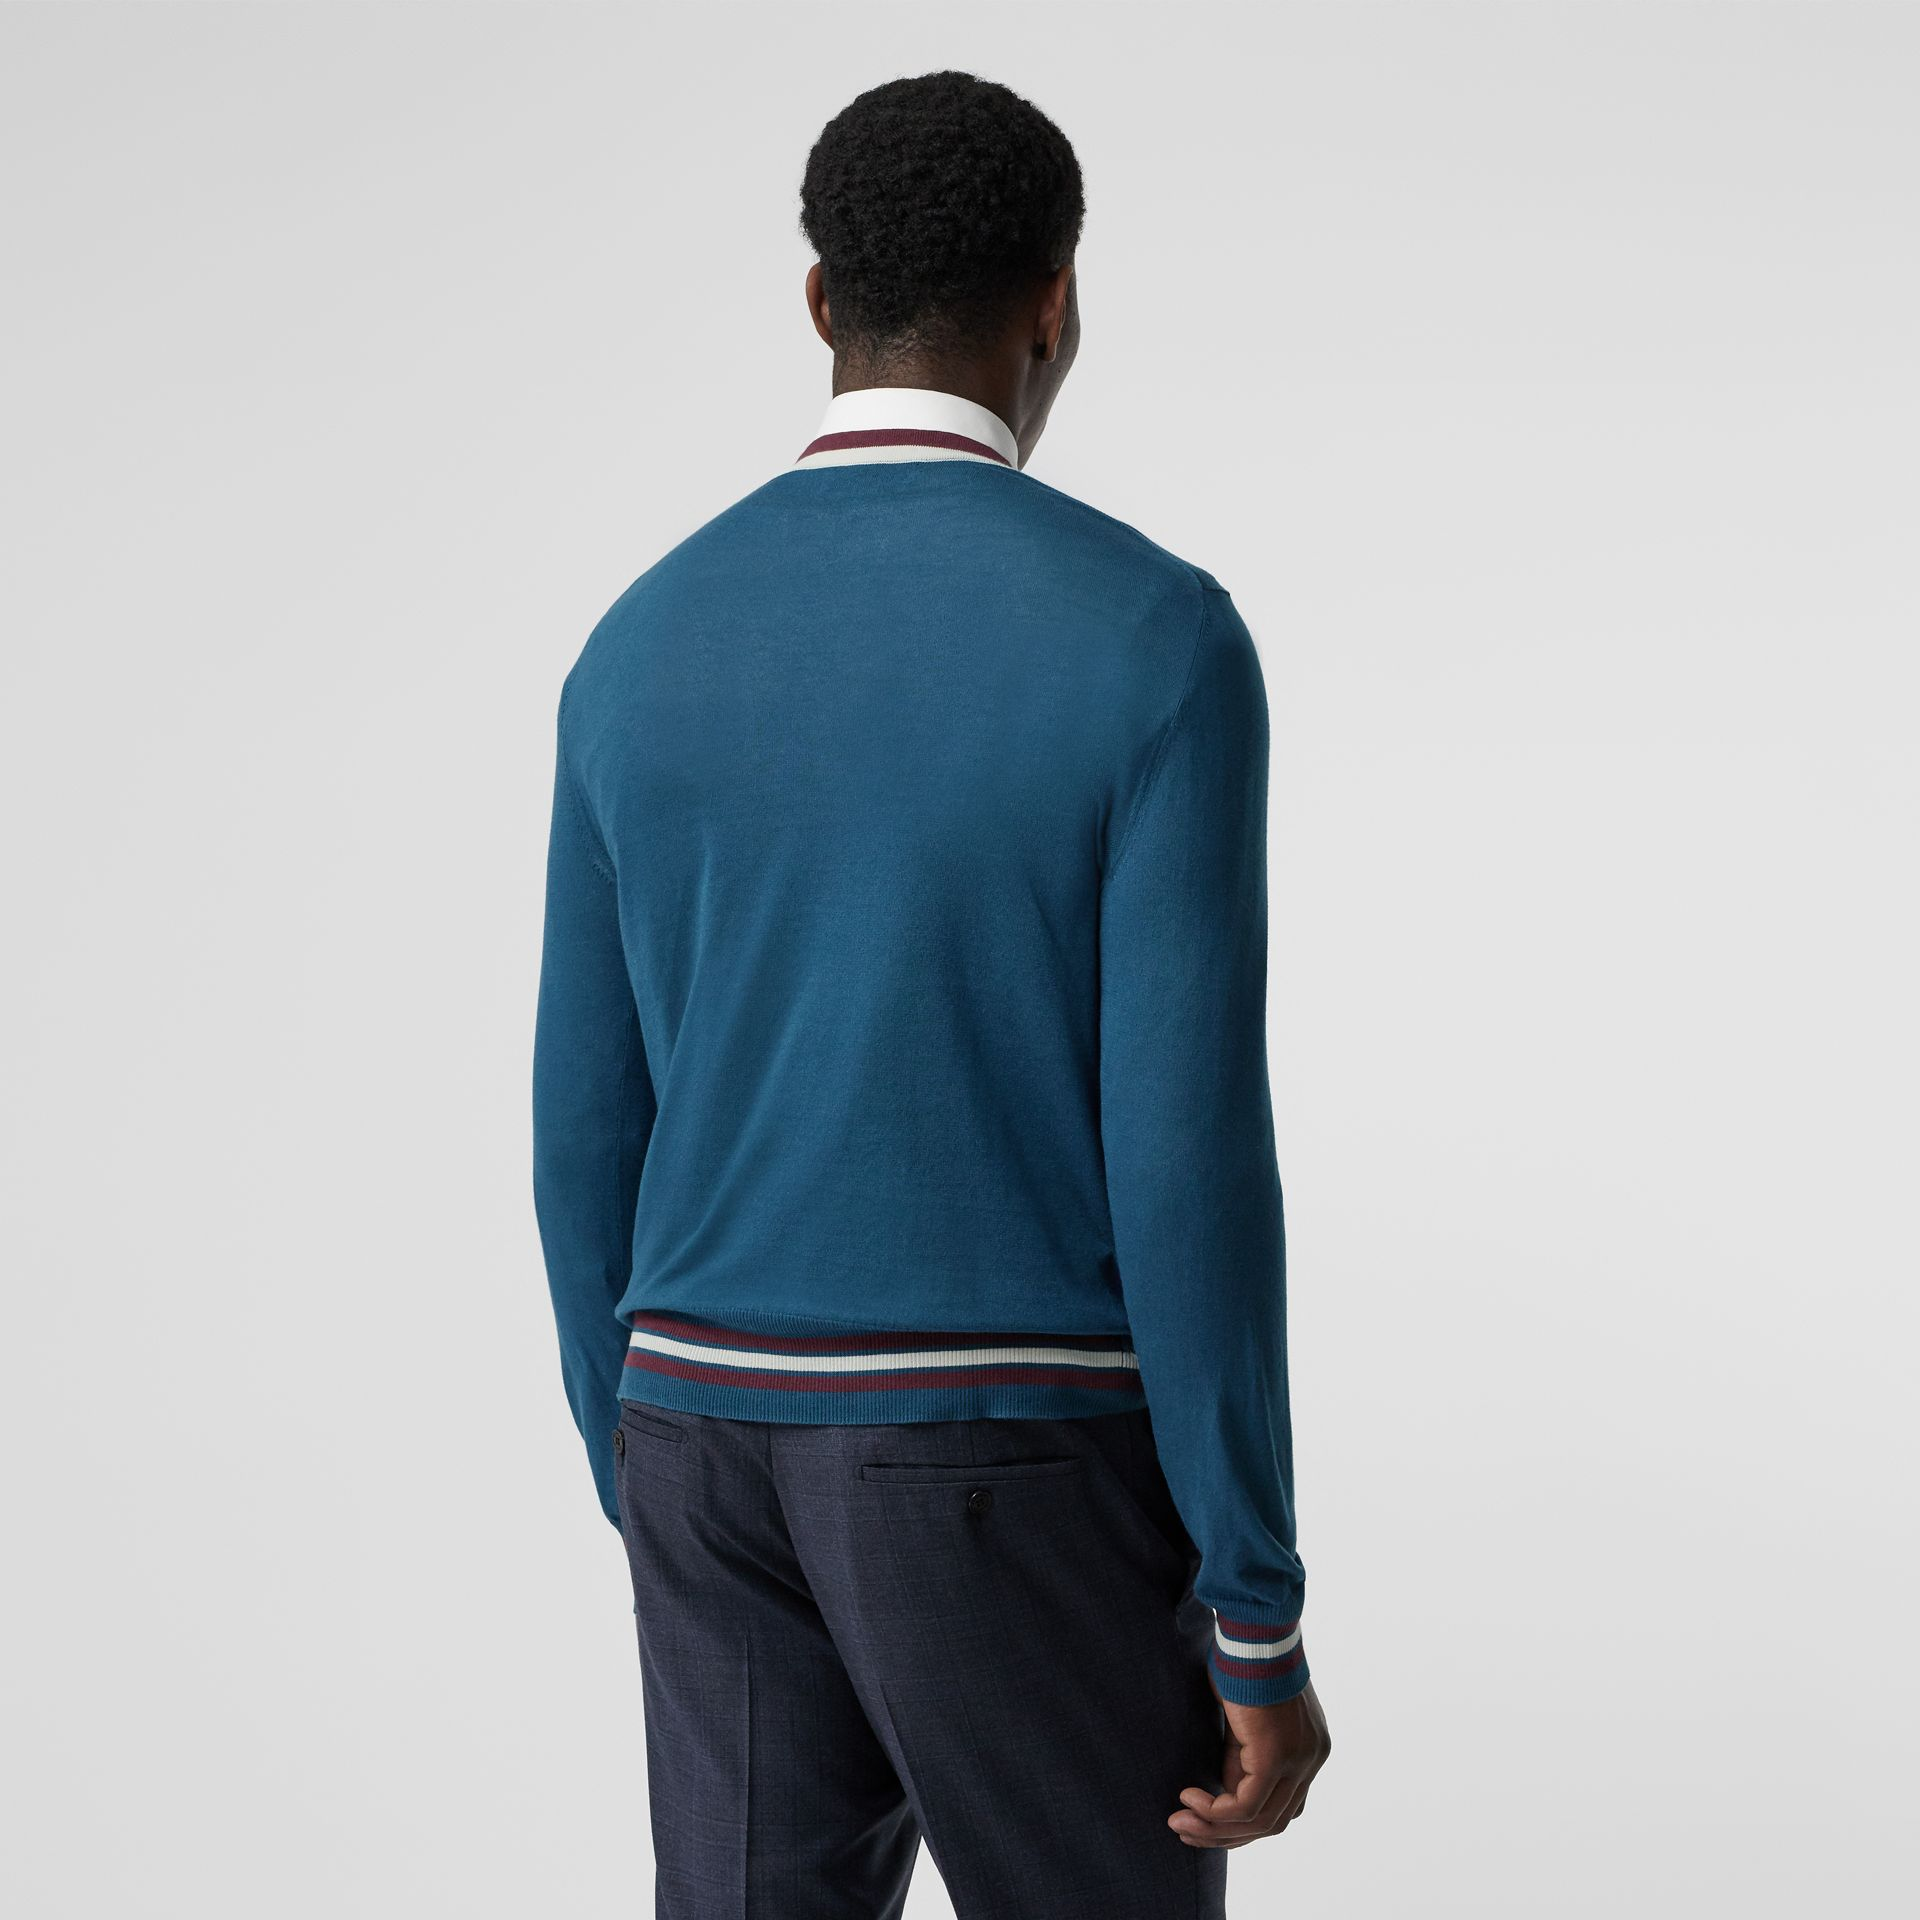 Embroidered Crest Cotton Silk Sweater in Dark Teal Blue - Men | Burberry Australia - gallery image 2